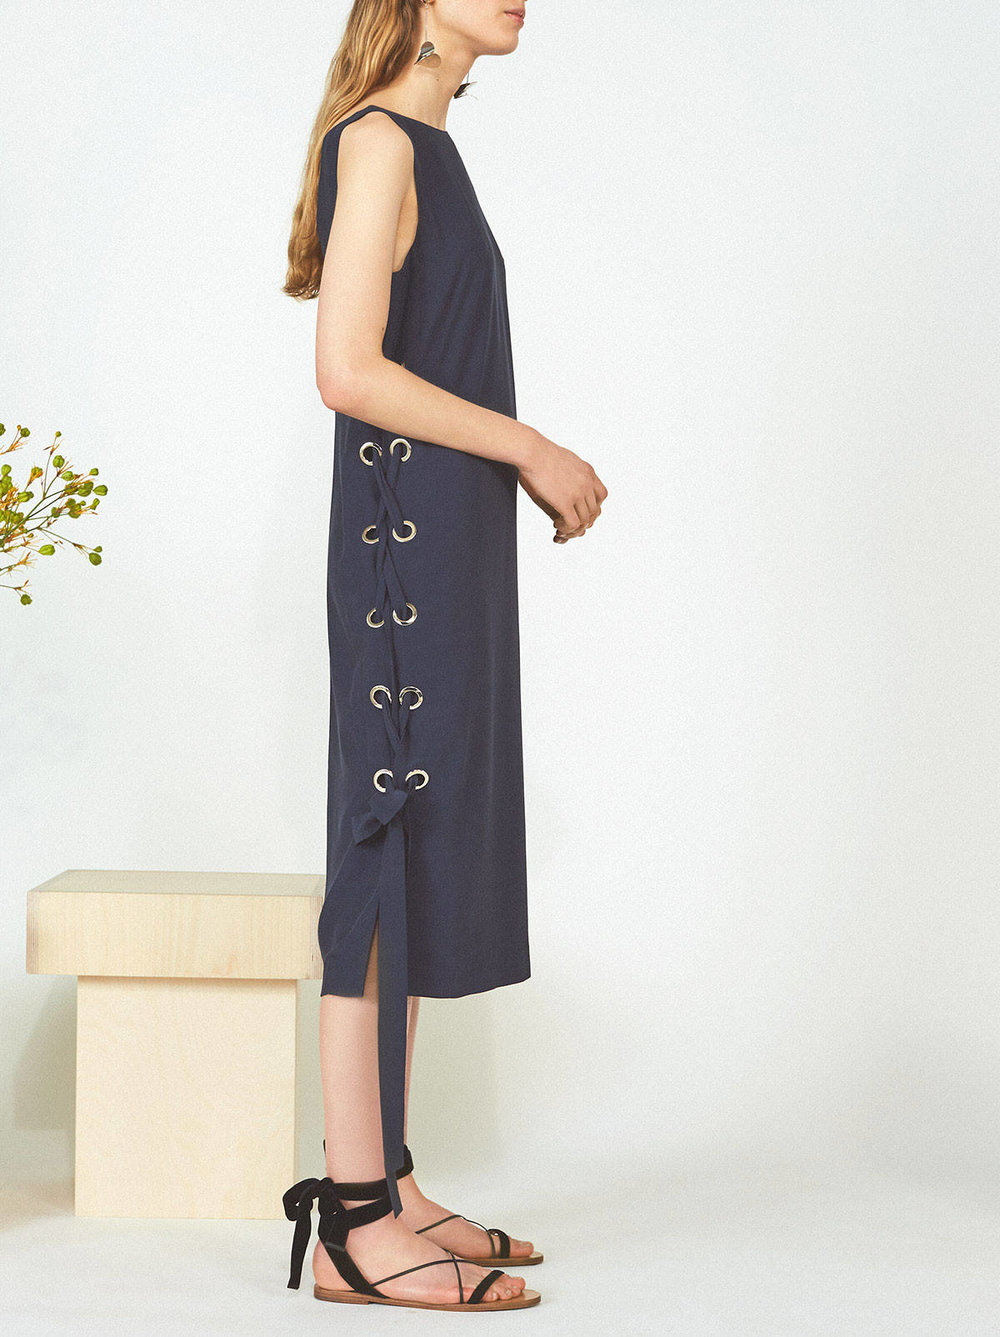 KITRI-Studio-Medora-Navy-Midi-Summer-Dress-1_cc49df53-bd88-440e-8c1e-8b4d18a79767.jpg